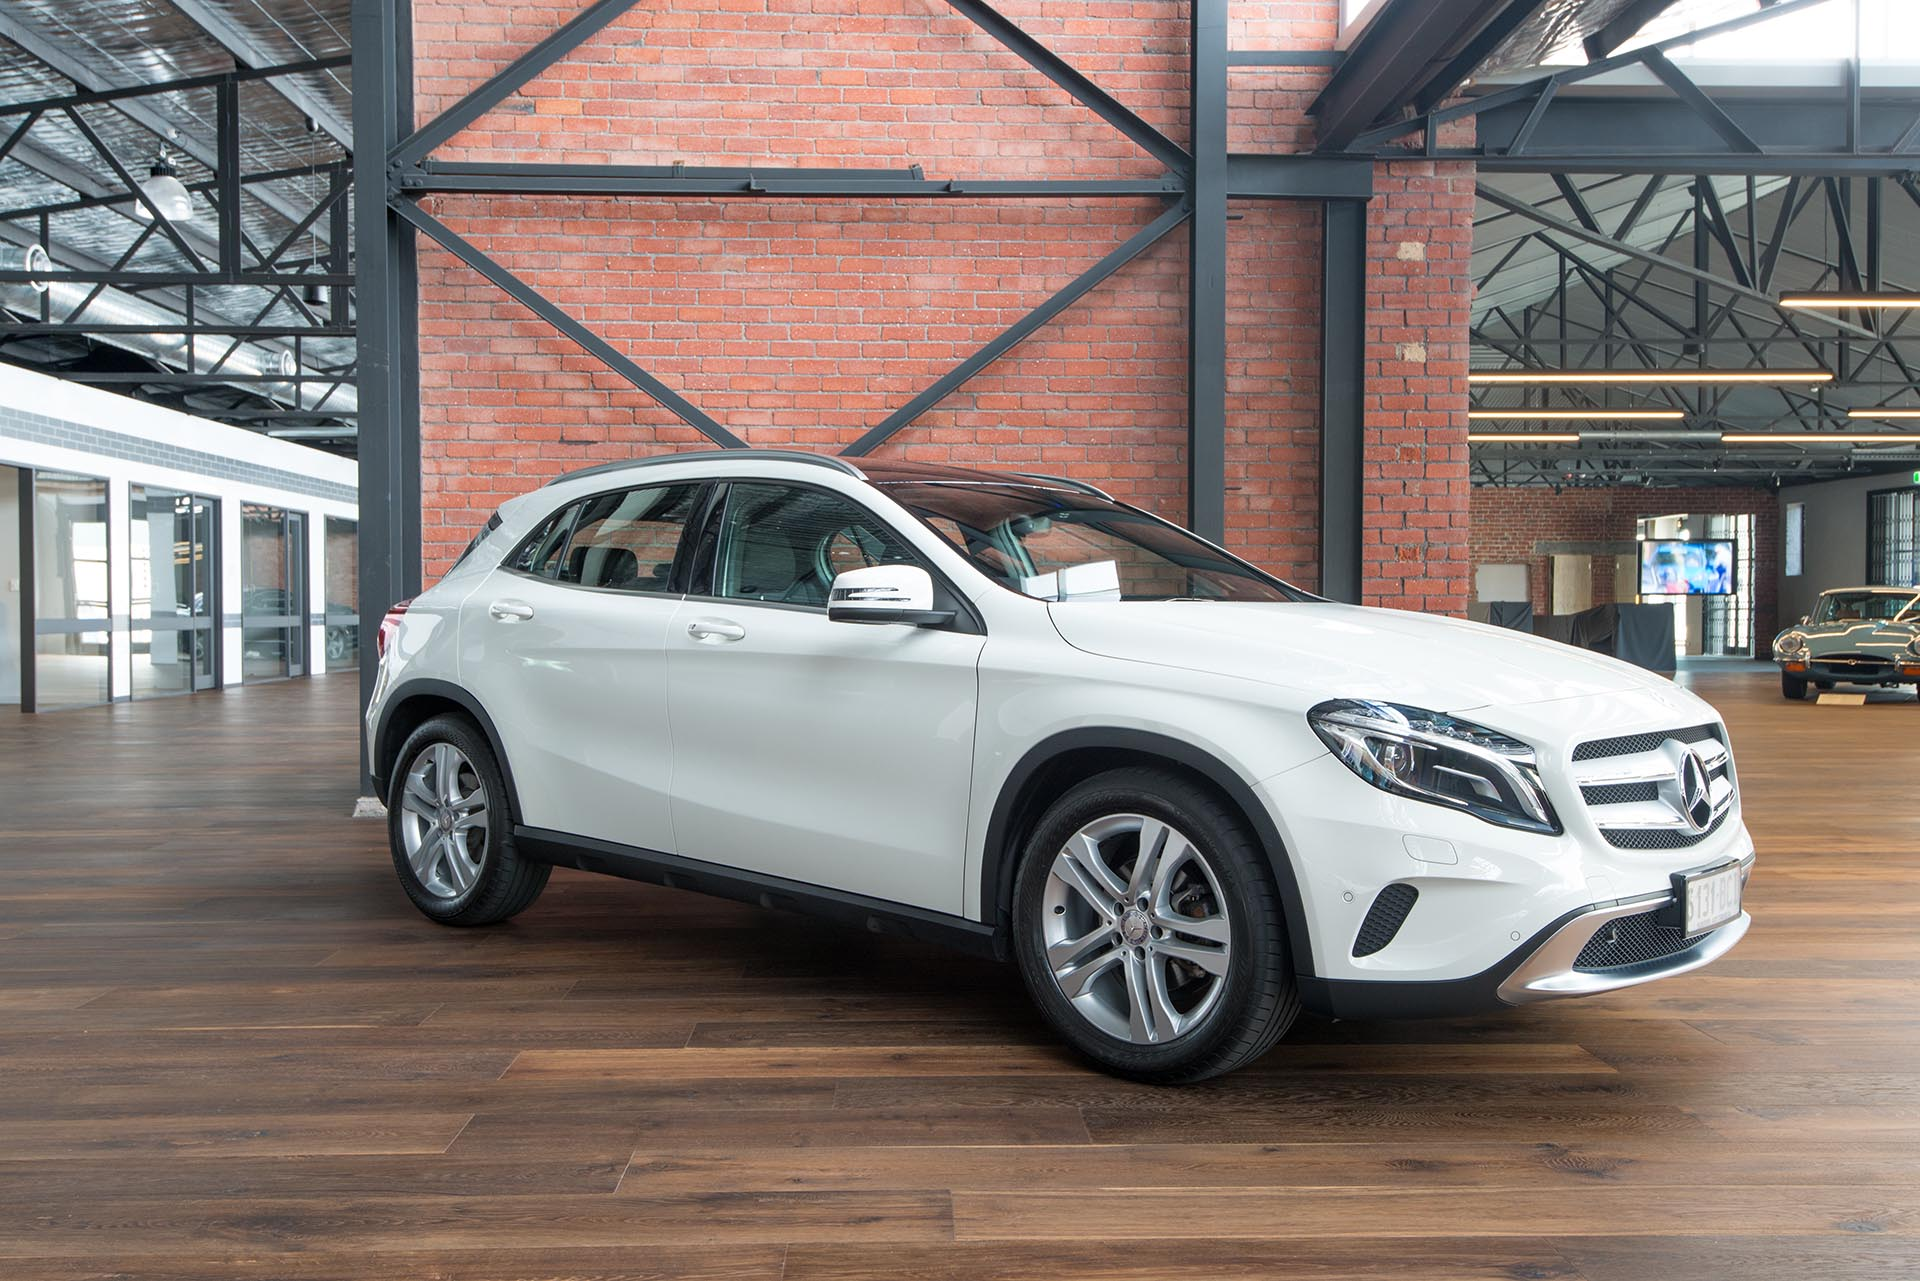 2014 mercedes benz gla 200 cdi richmonds classic and. Black Bedroom Furniture Sets. Home Design Ideas